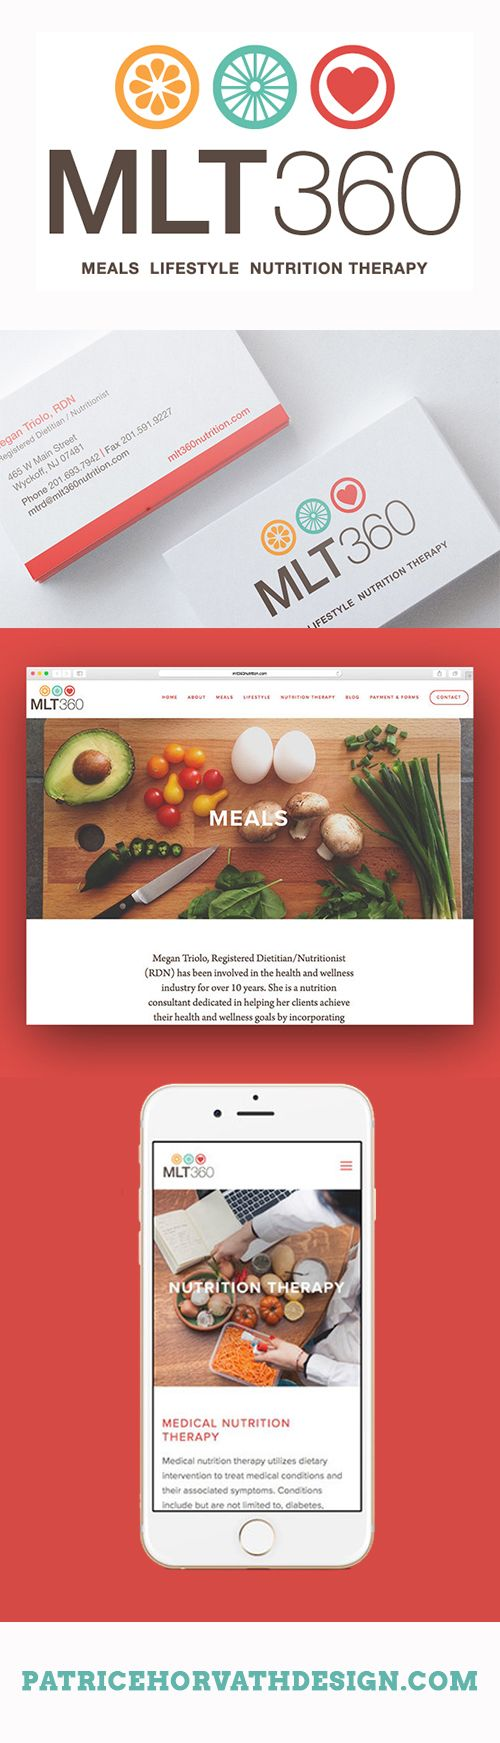 Creative branding, logo and web design for small businesses. MLT360 Nutritionist Logo by Patrice Horvath Design.